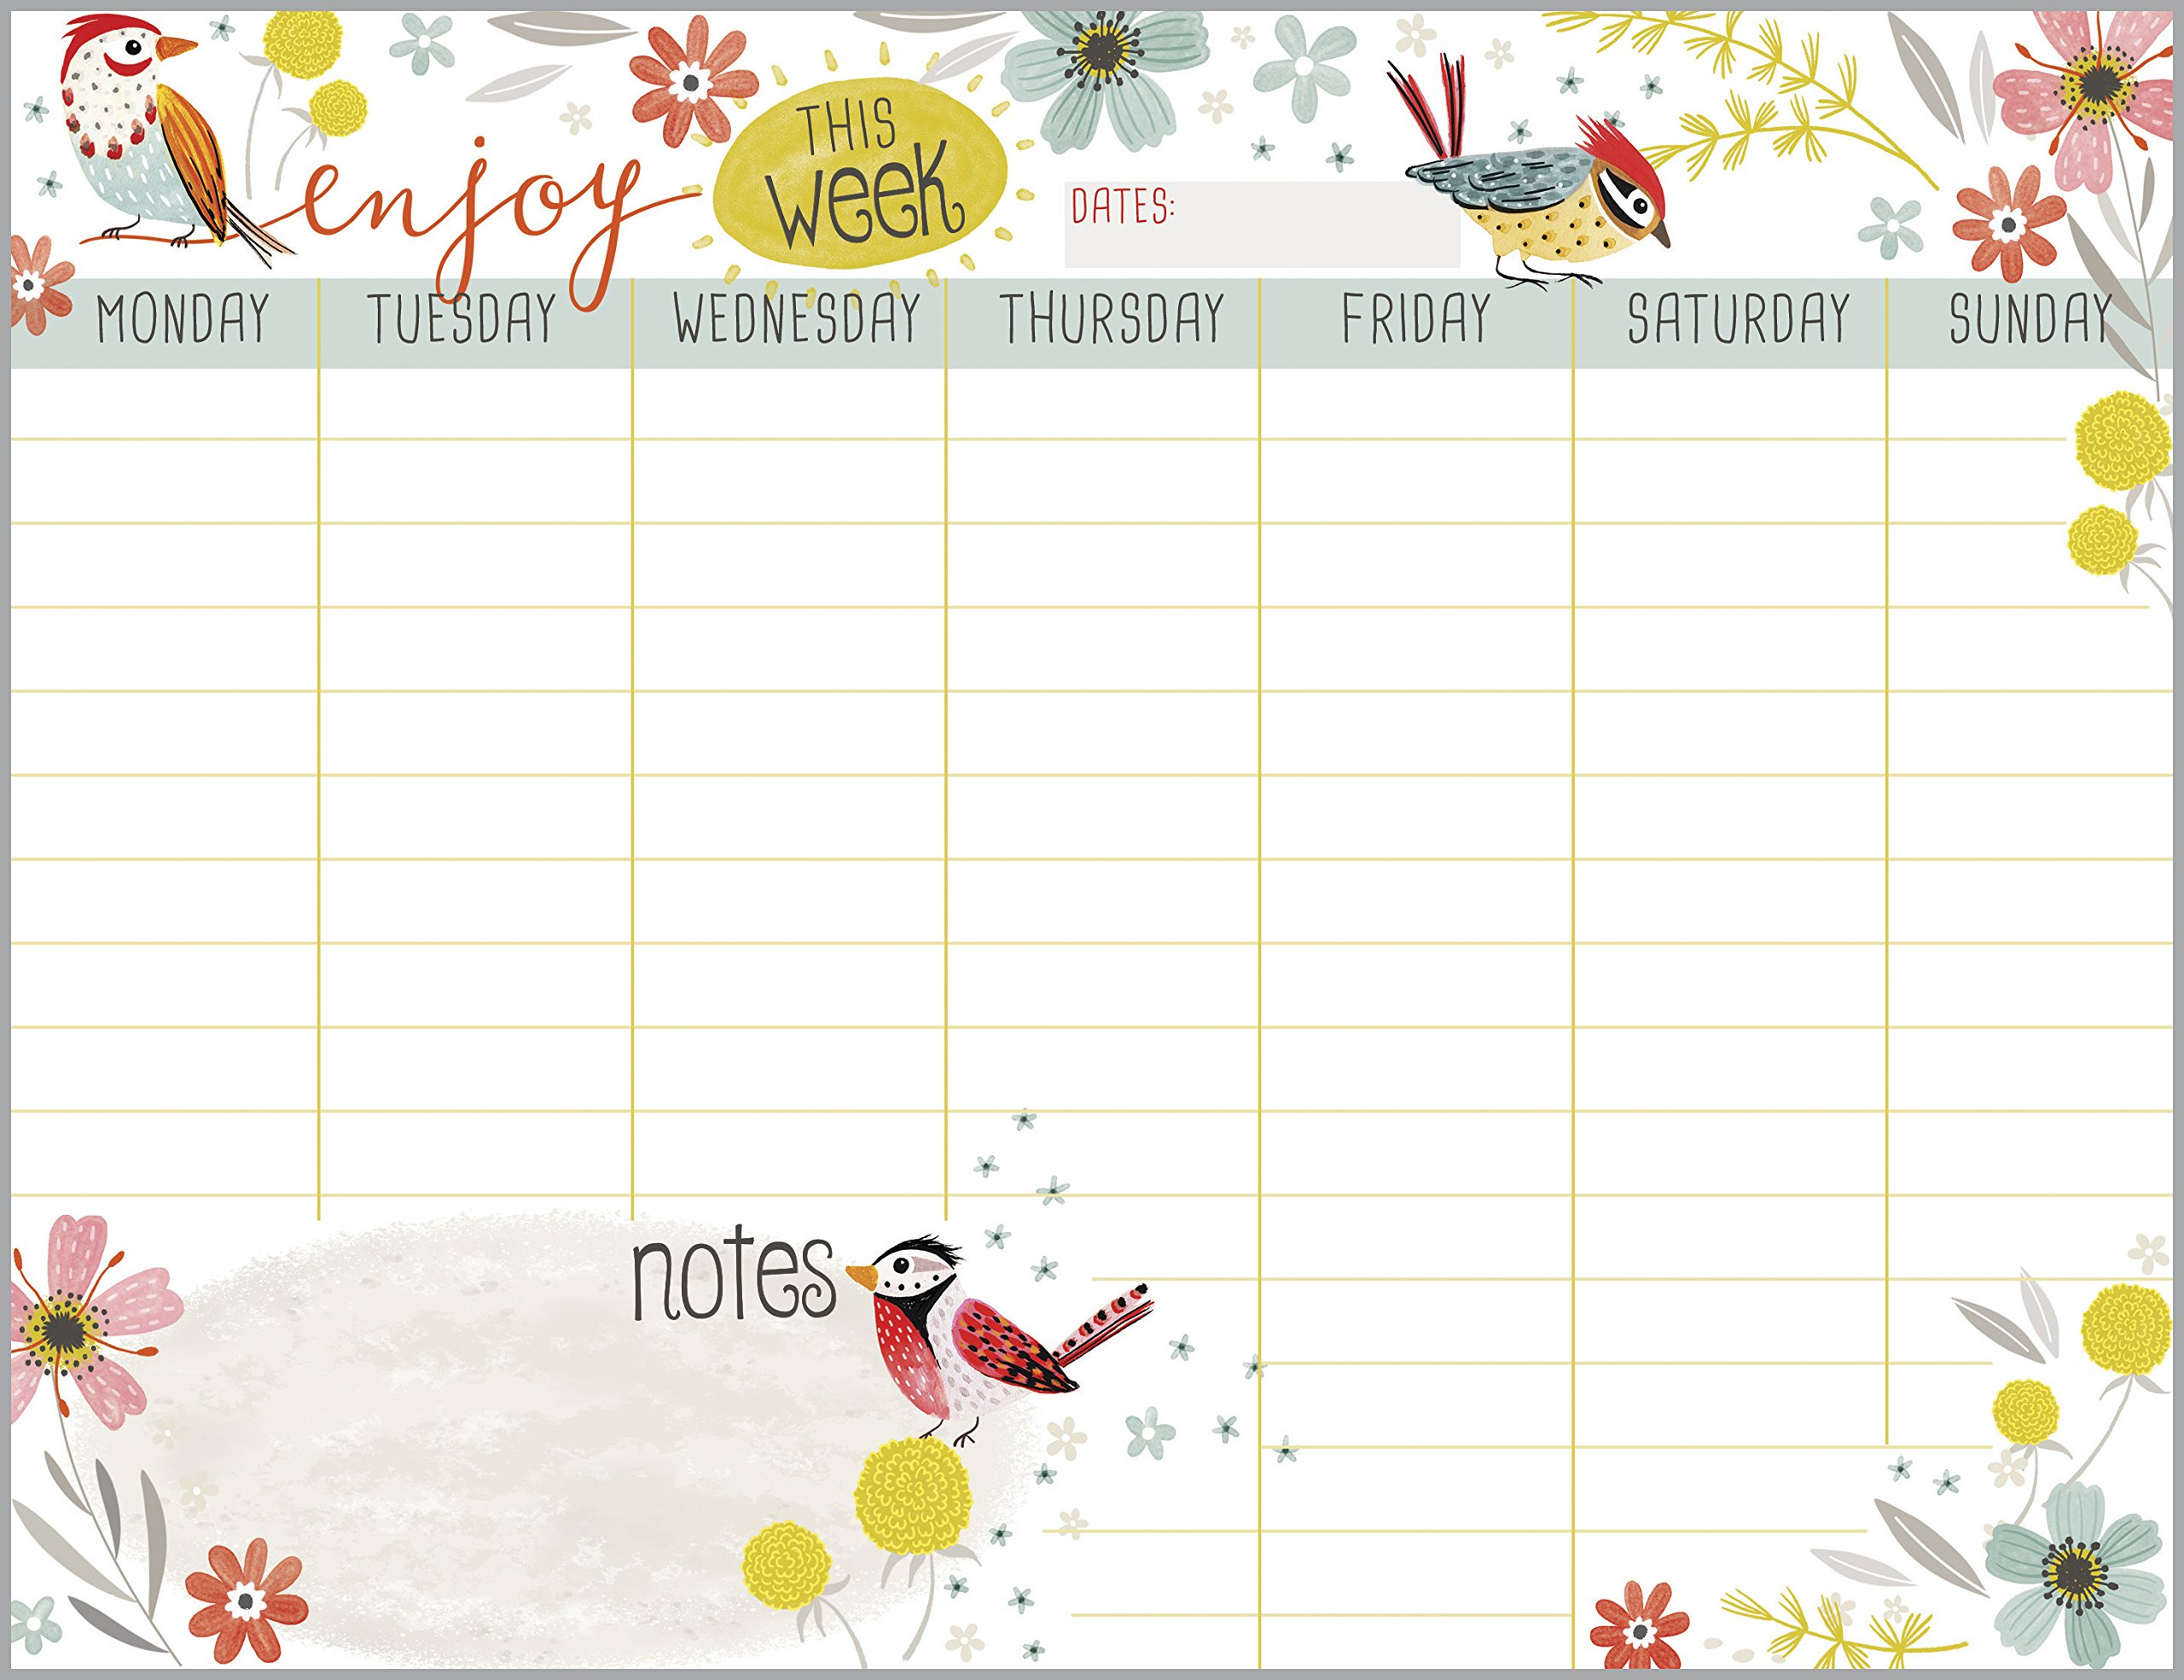 Bird-and-Flower-Wreath-Weekly-Calendar-Pad-with-Attachable-Magnet